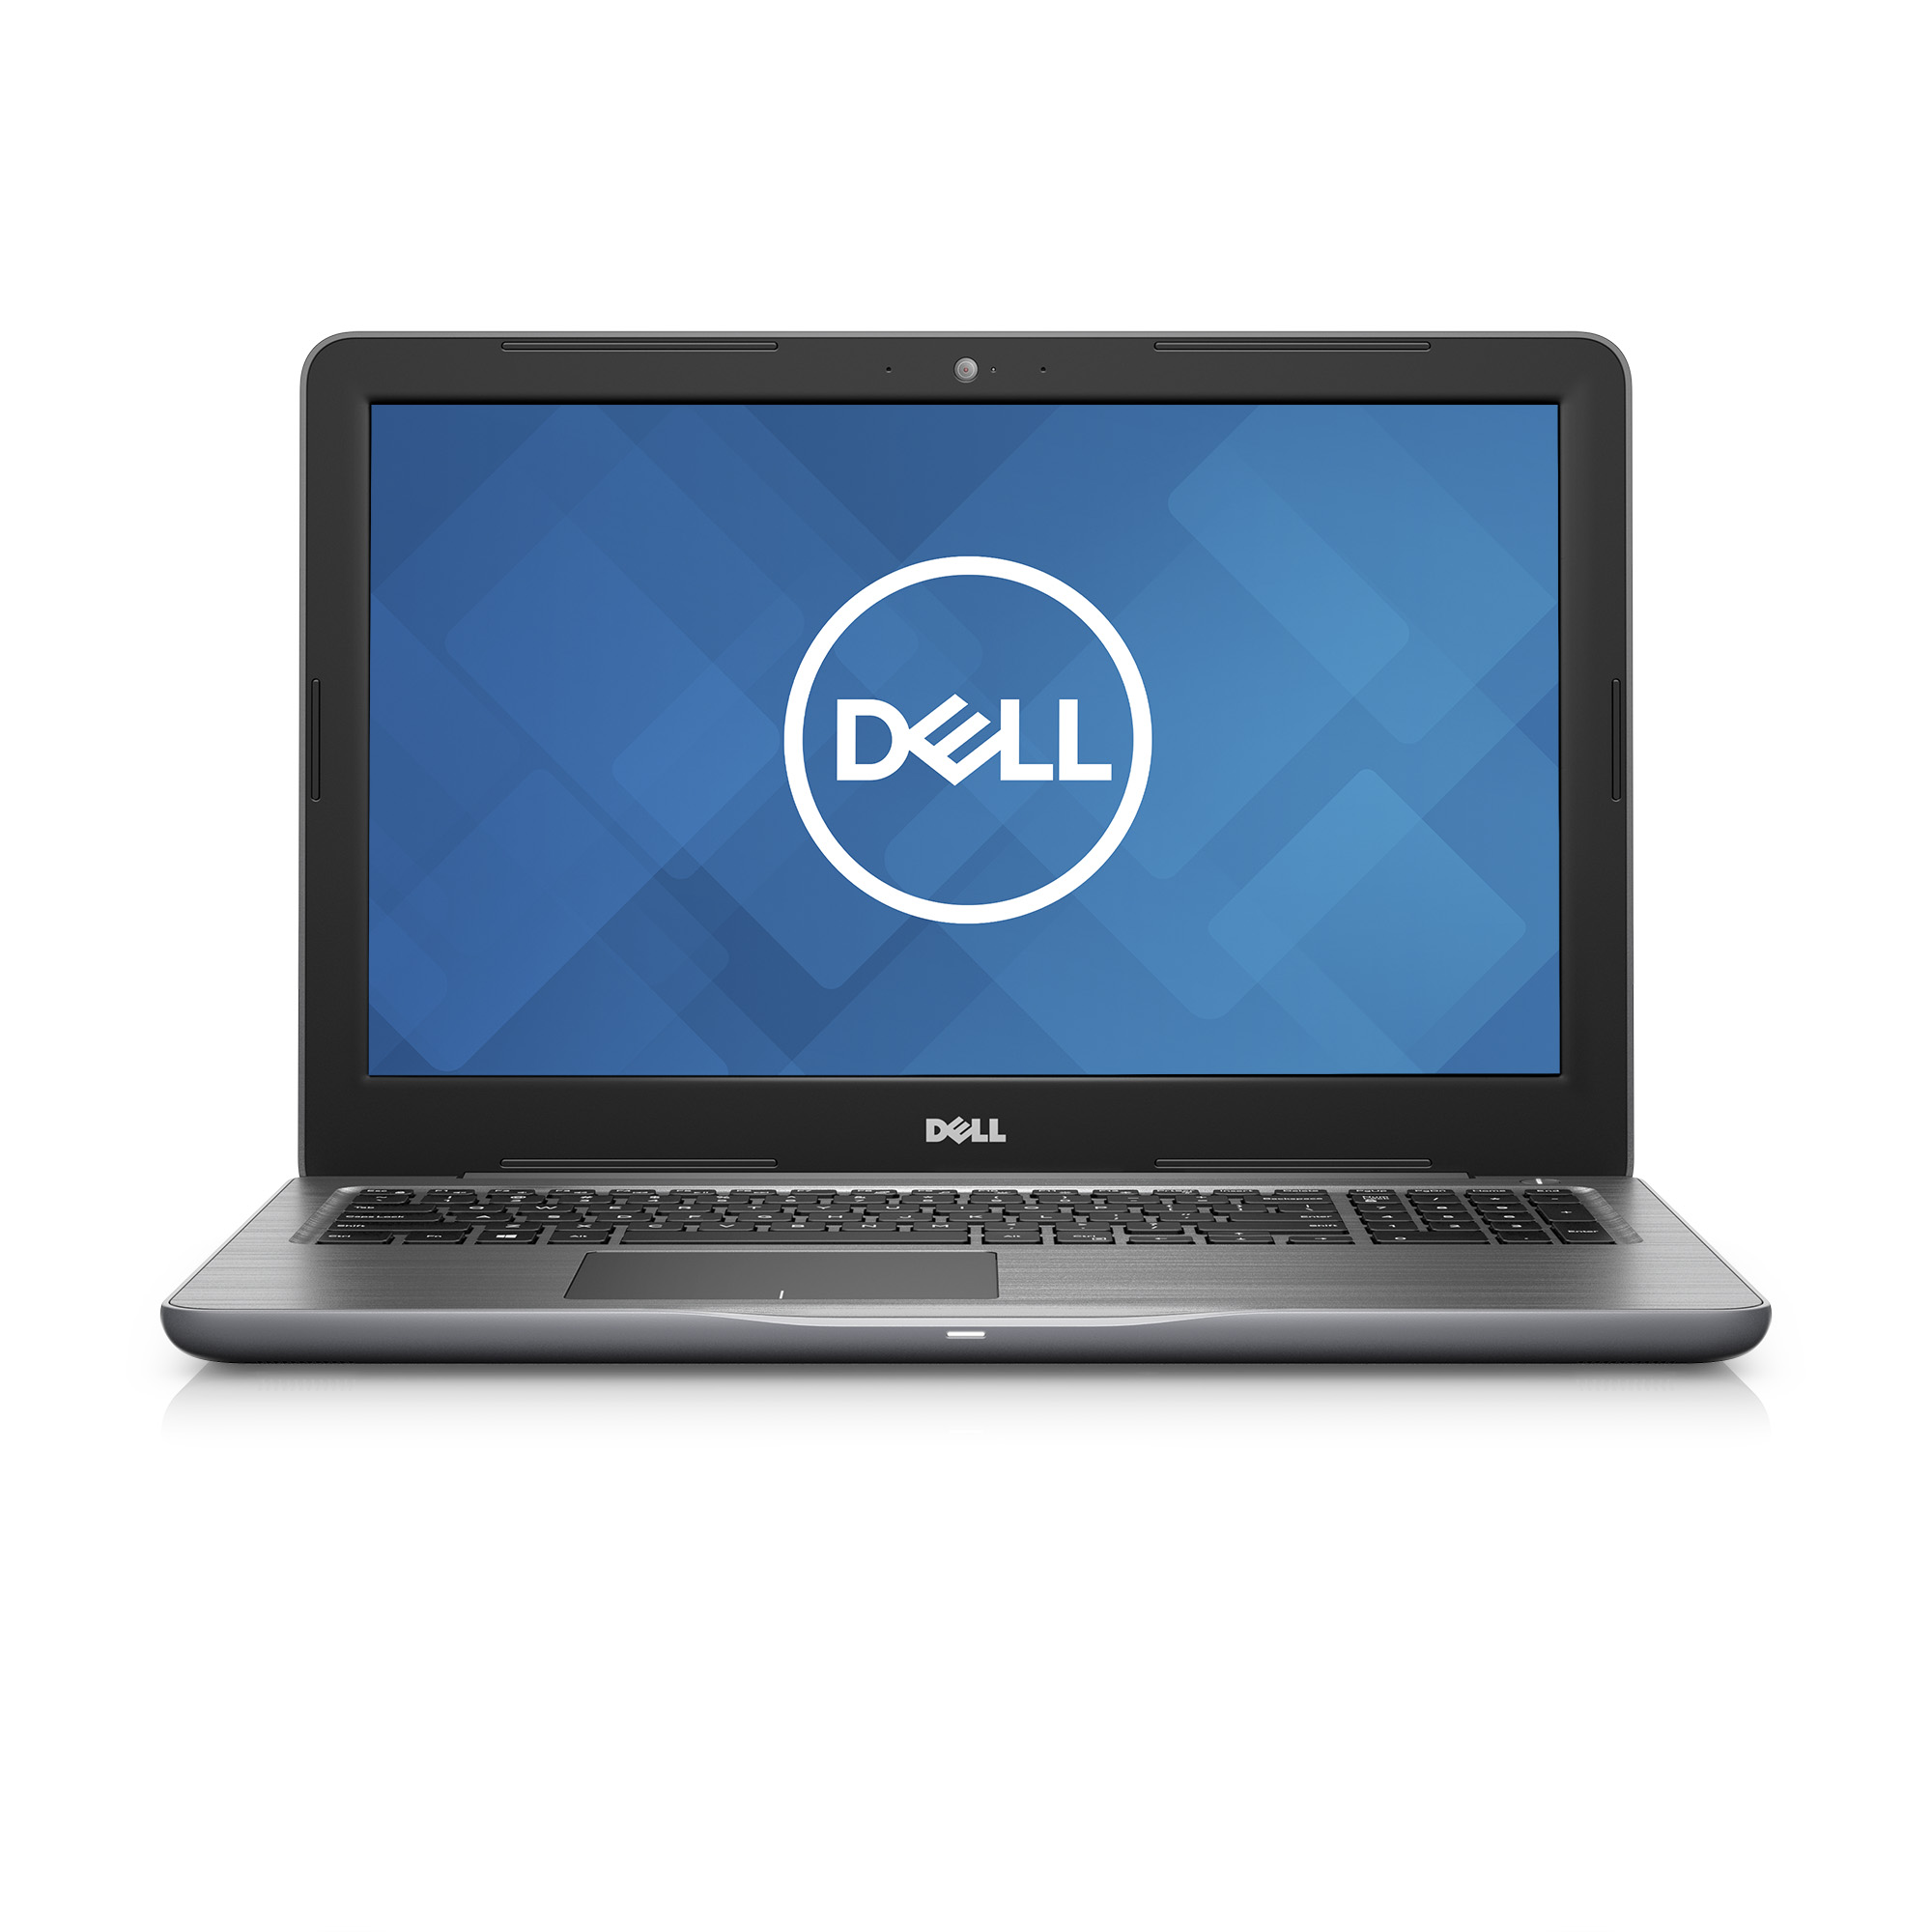 Dell Inspiron 15 5000 Series (5565) with 7th Gen AMD A12-9700P Quad-Core Processor, 12GB Memory, 1TB Hard Drive, 15.6-inch FHD (1920 x 1080) Truelife LED-Backlit Touch Display, Windows 10 Home